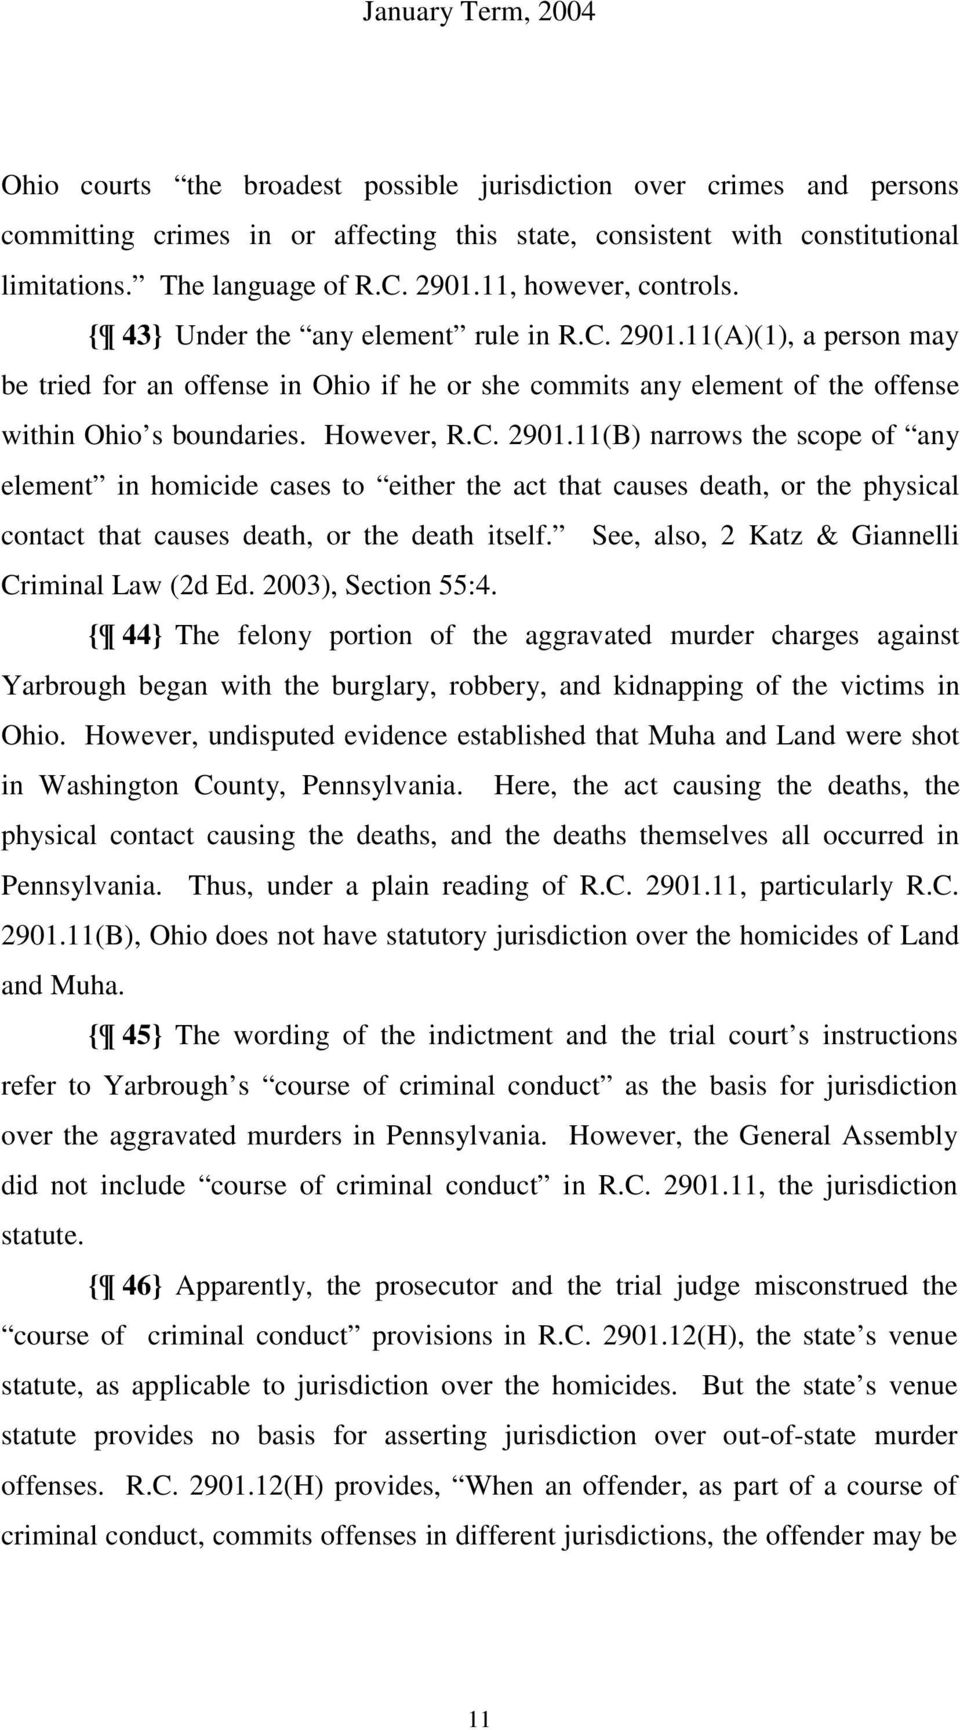 11(A)(1), a person may be tried for an offense in Ohio if he or she commits any element of the offense within Ohio s boundaries. However, R.C. 2901.